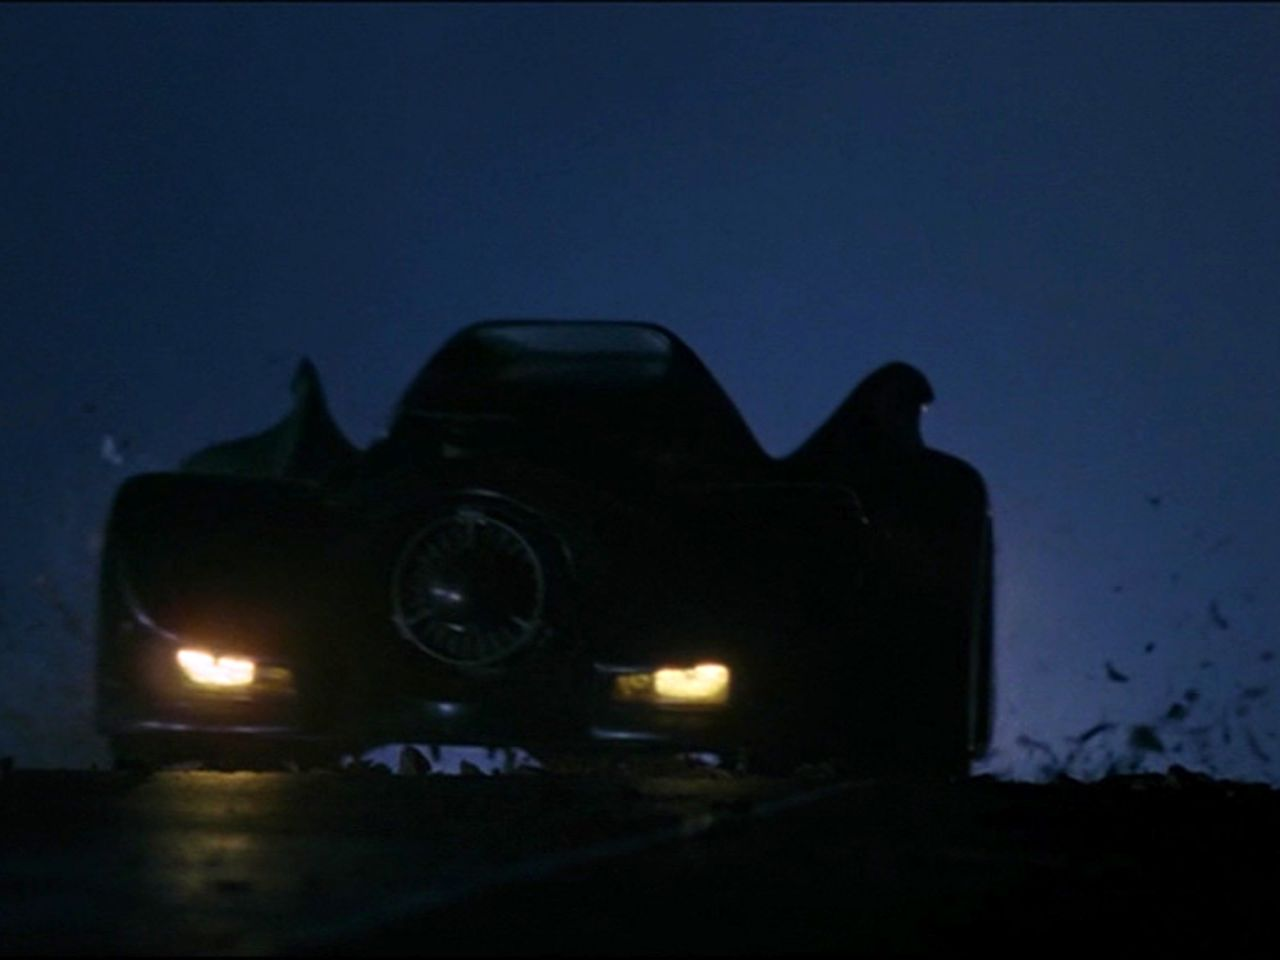 Batmobile In The Dark Wallpaper 1280x960